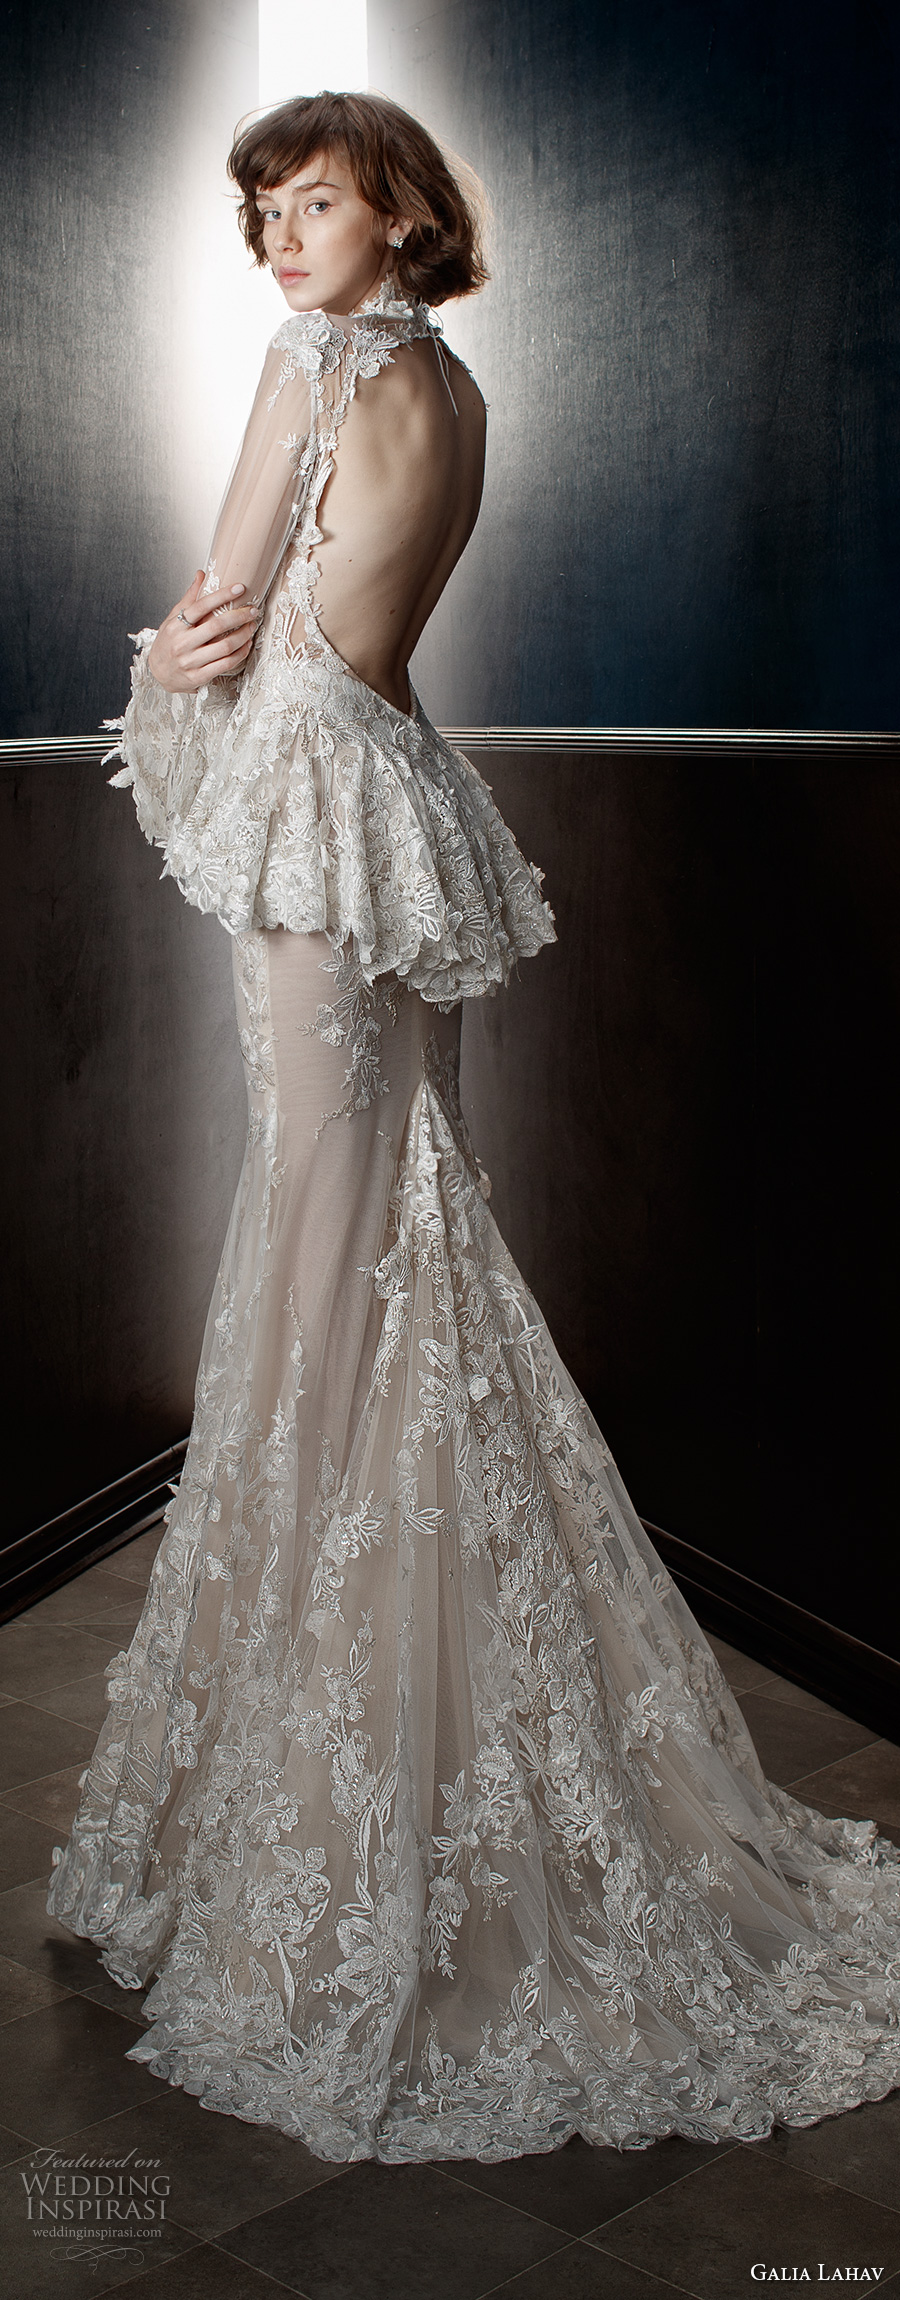 galia lahav spring 2018 bridal long sleeves sheer high neck sweetheart neckline full embellishment peplum victorian vintage sheath wedding dress keyhole back sweep train (tesla) bv